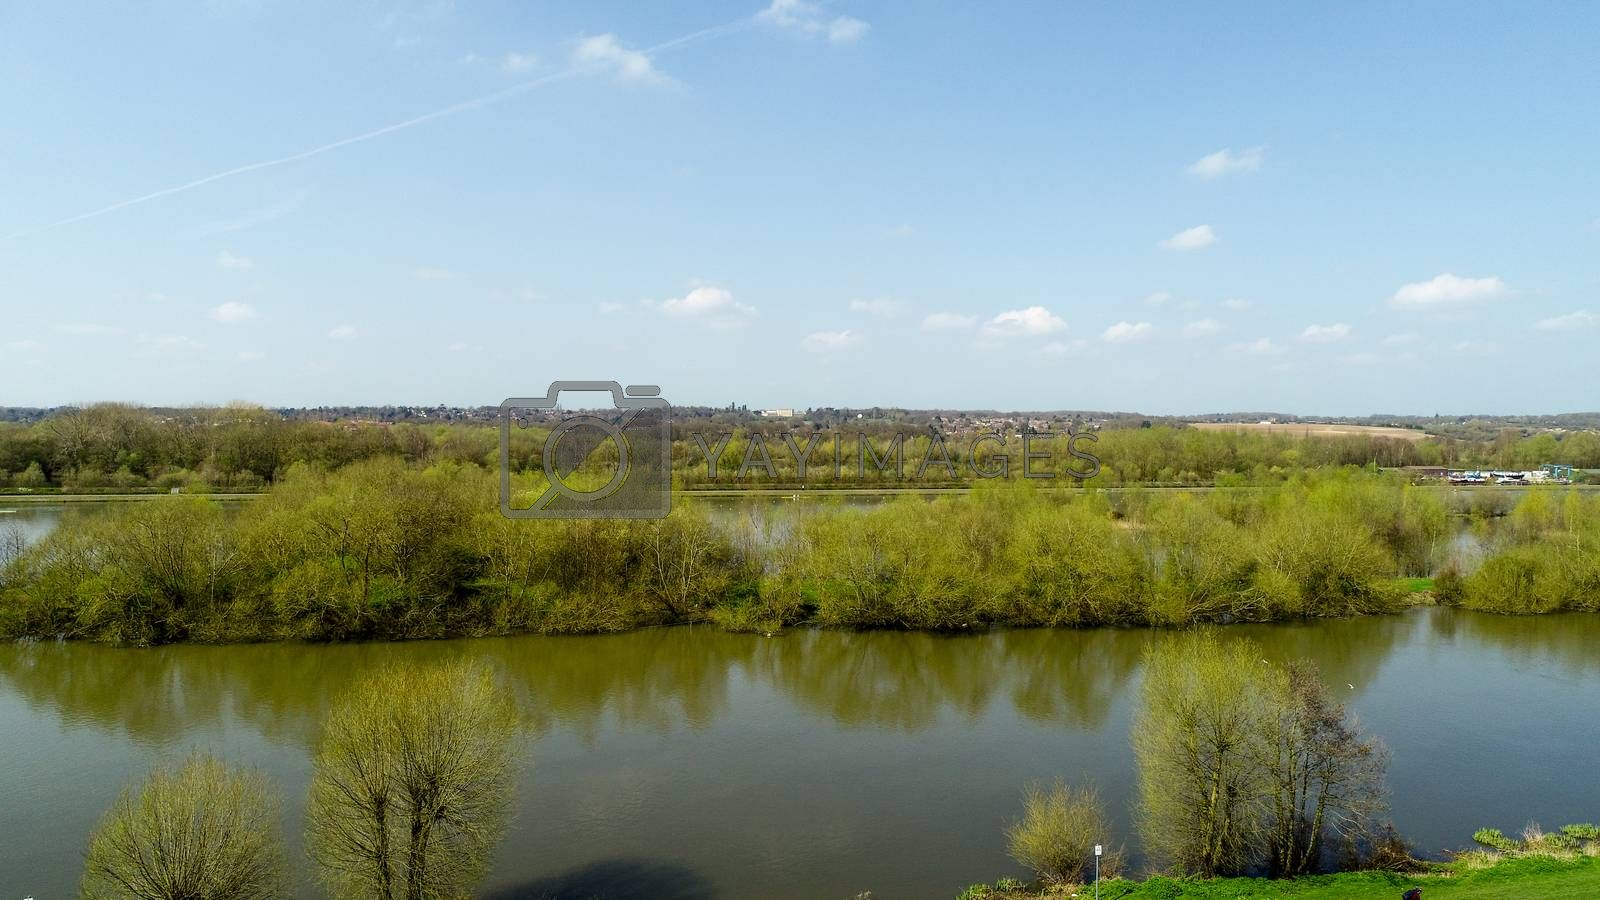 Aerial view of Thames River near Reading - Berkshire, United Kingdom in a spring sunny day - 14.04.2018